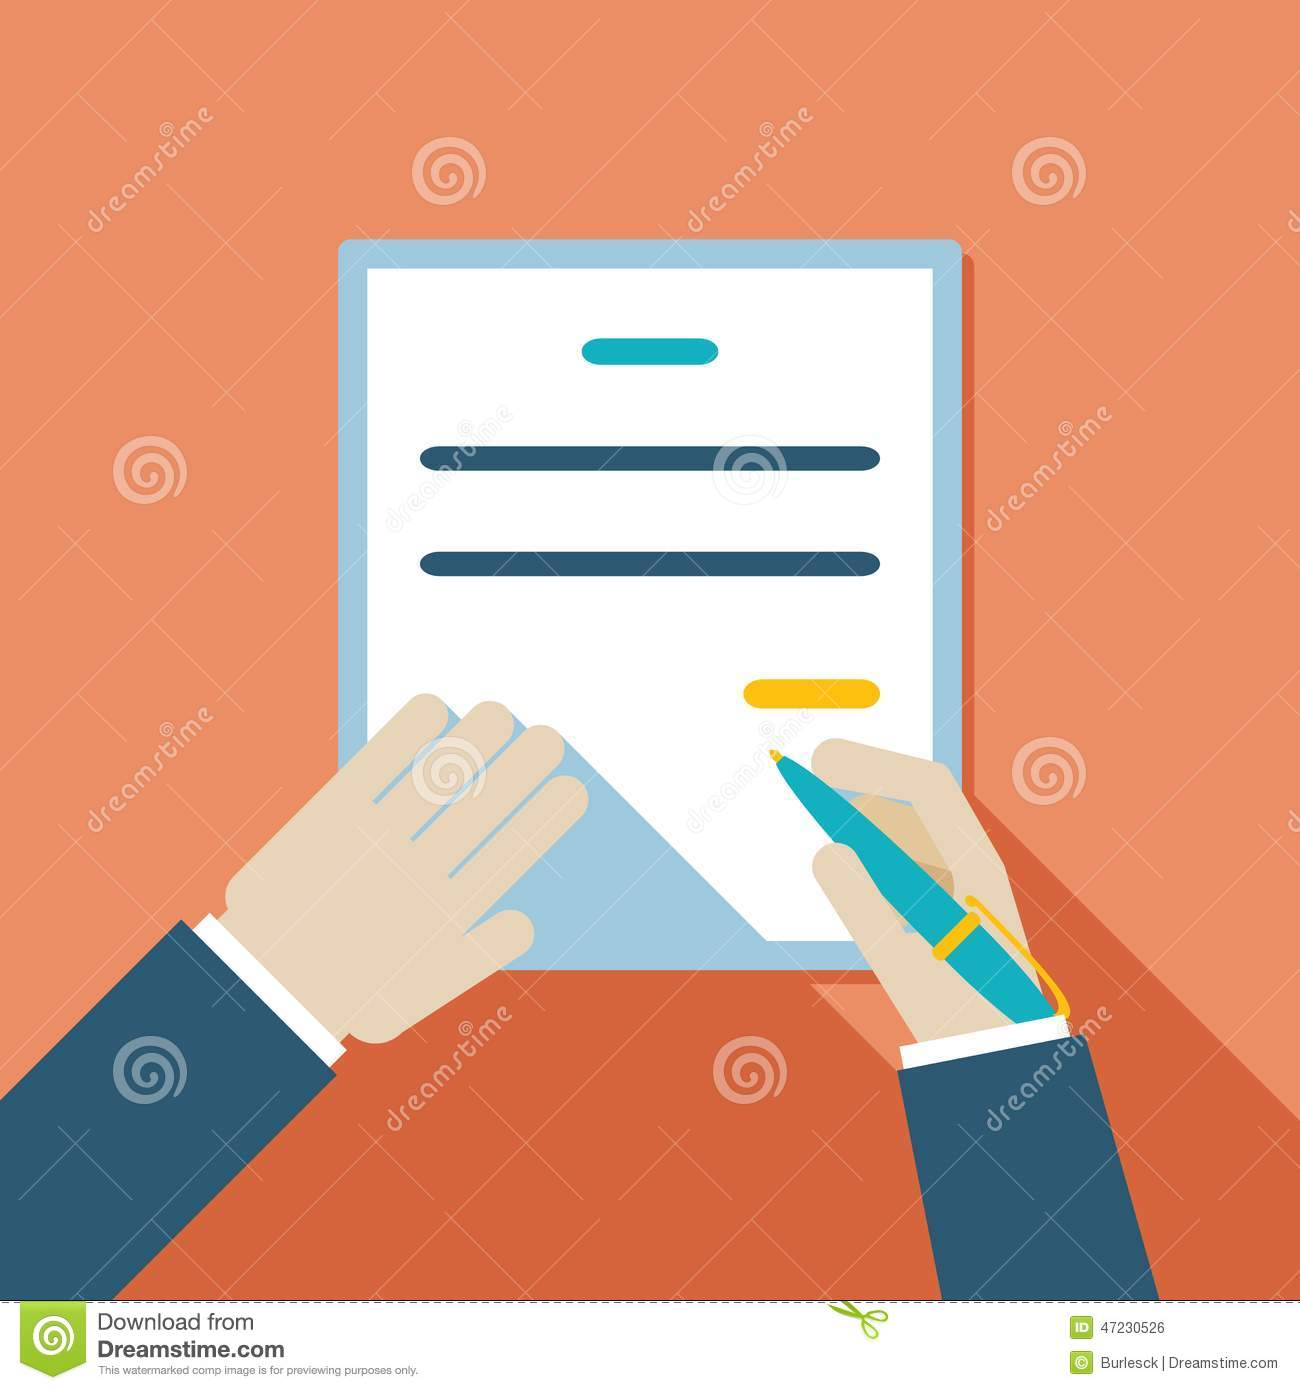 signing a contract 15 things to look for before you sign - contract review checklist how to review contracts author: joanne cassidy.